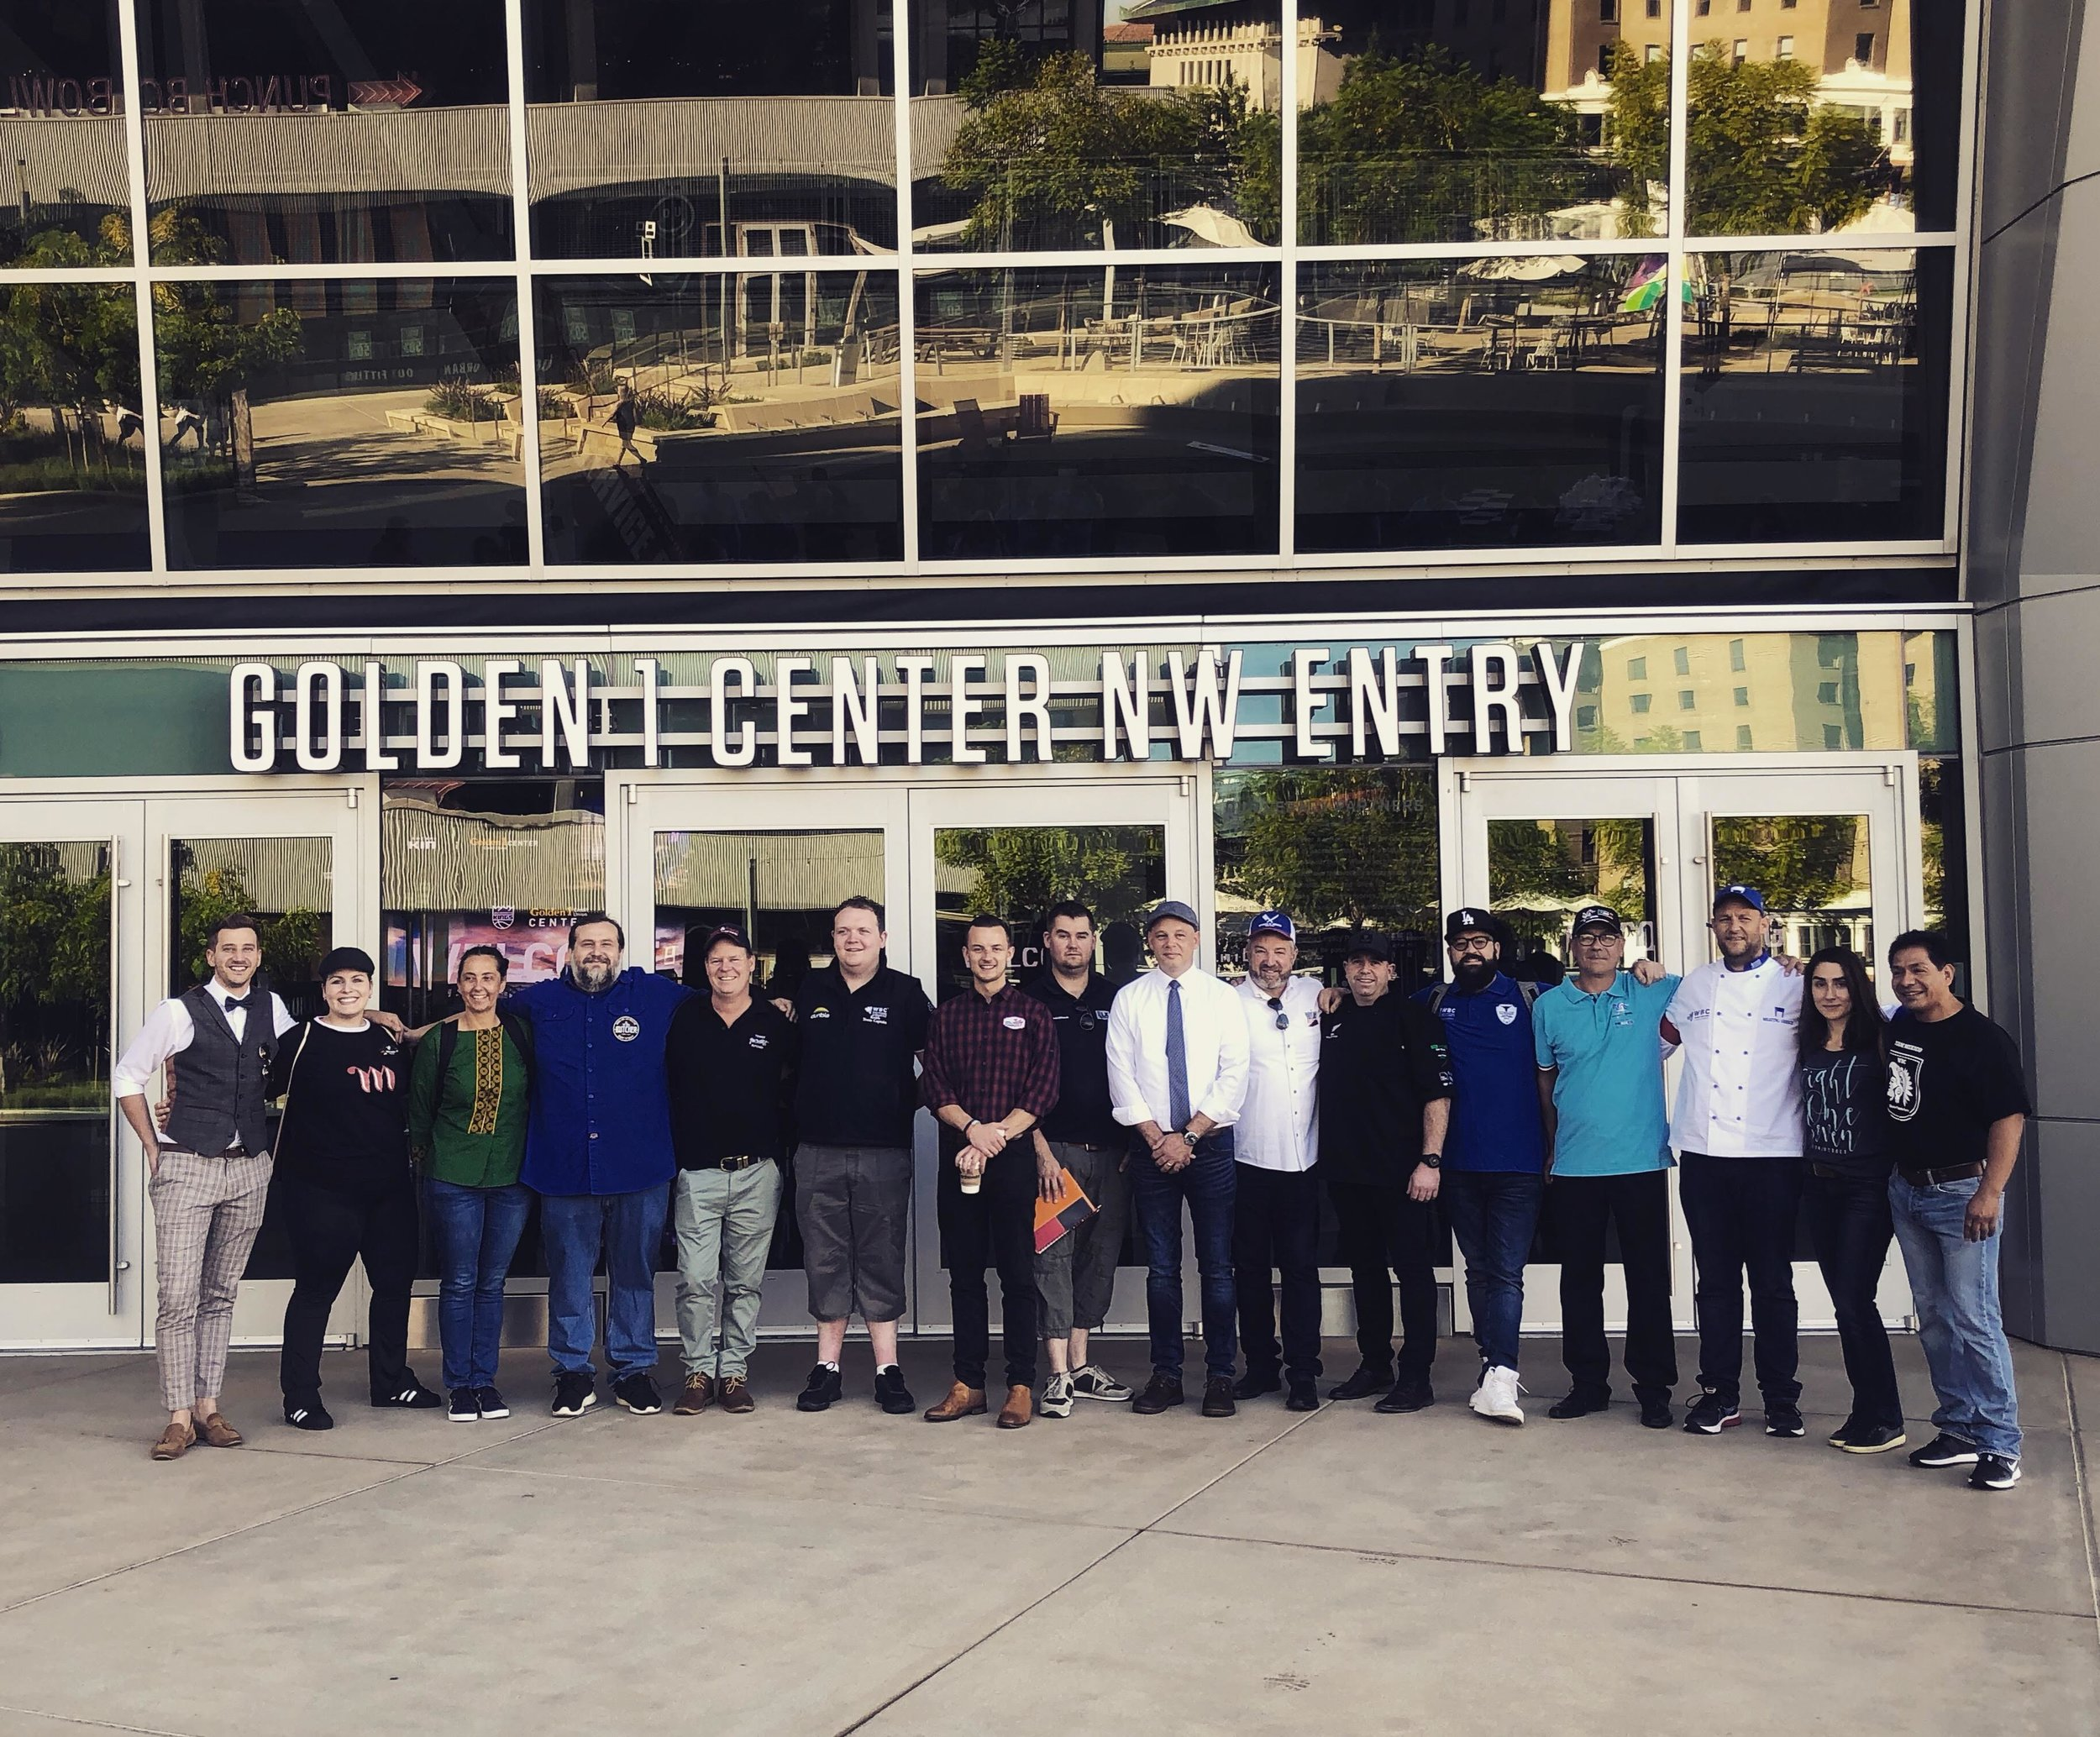 Team captains in front of the Golden 1 Center